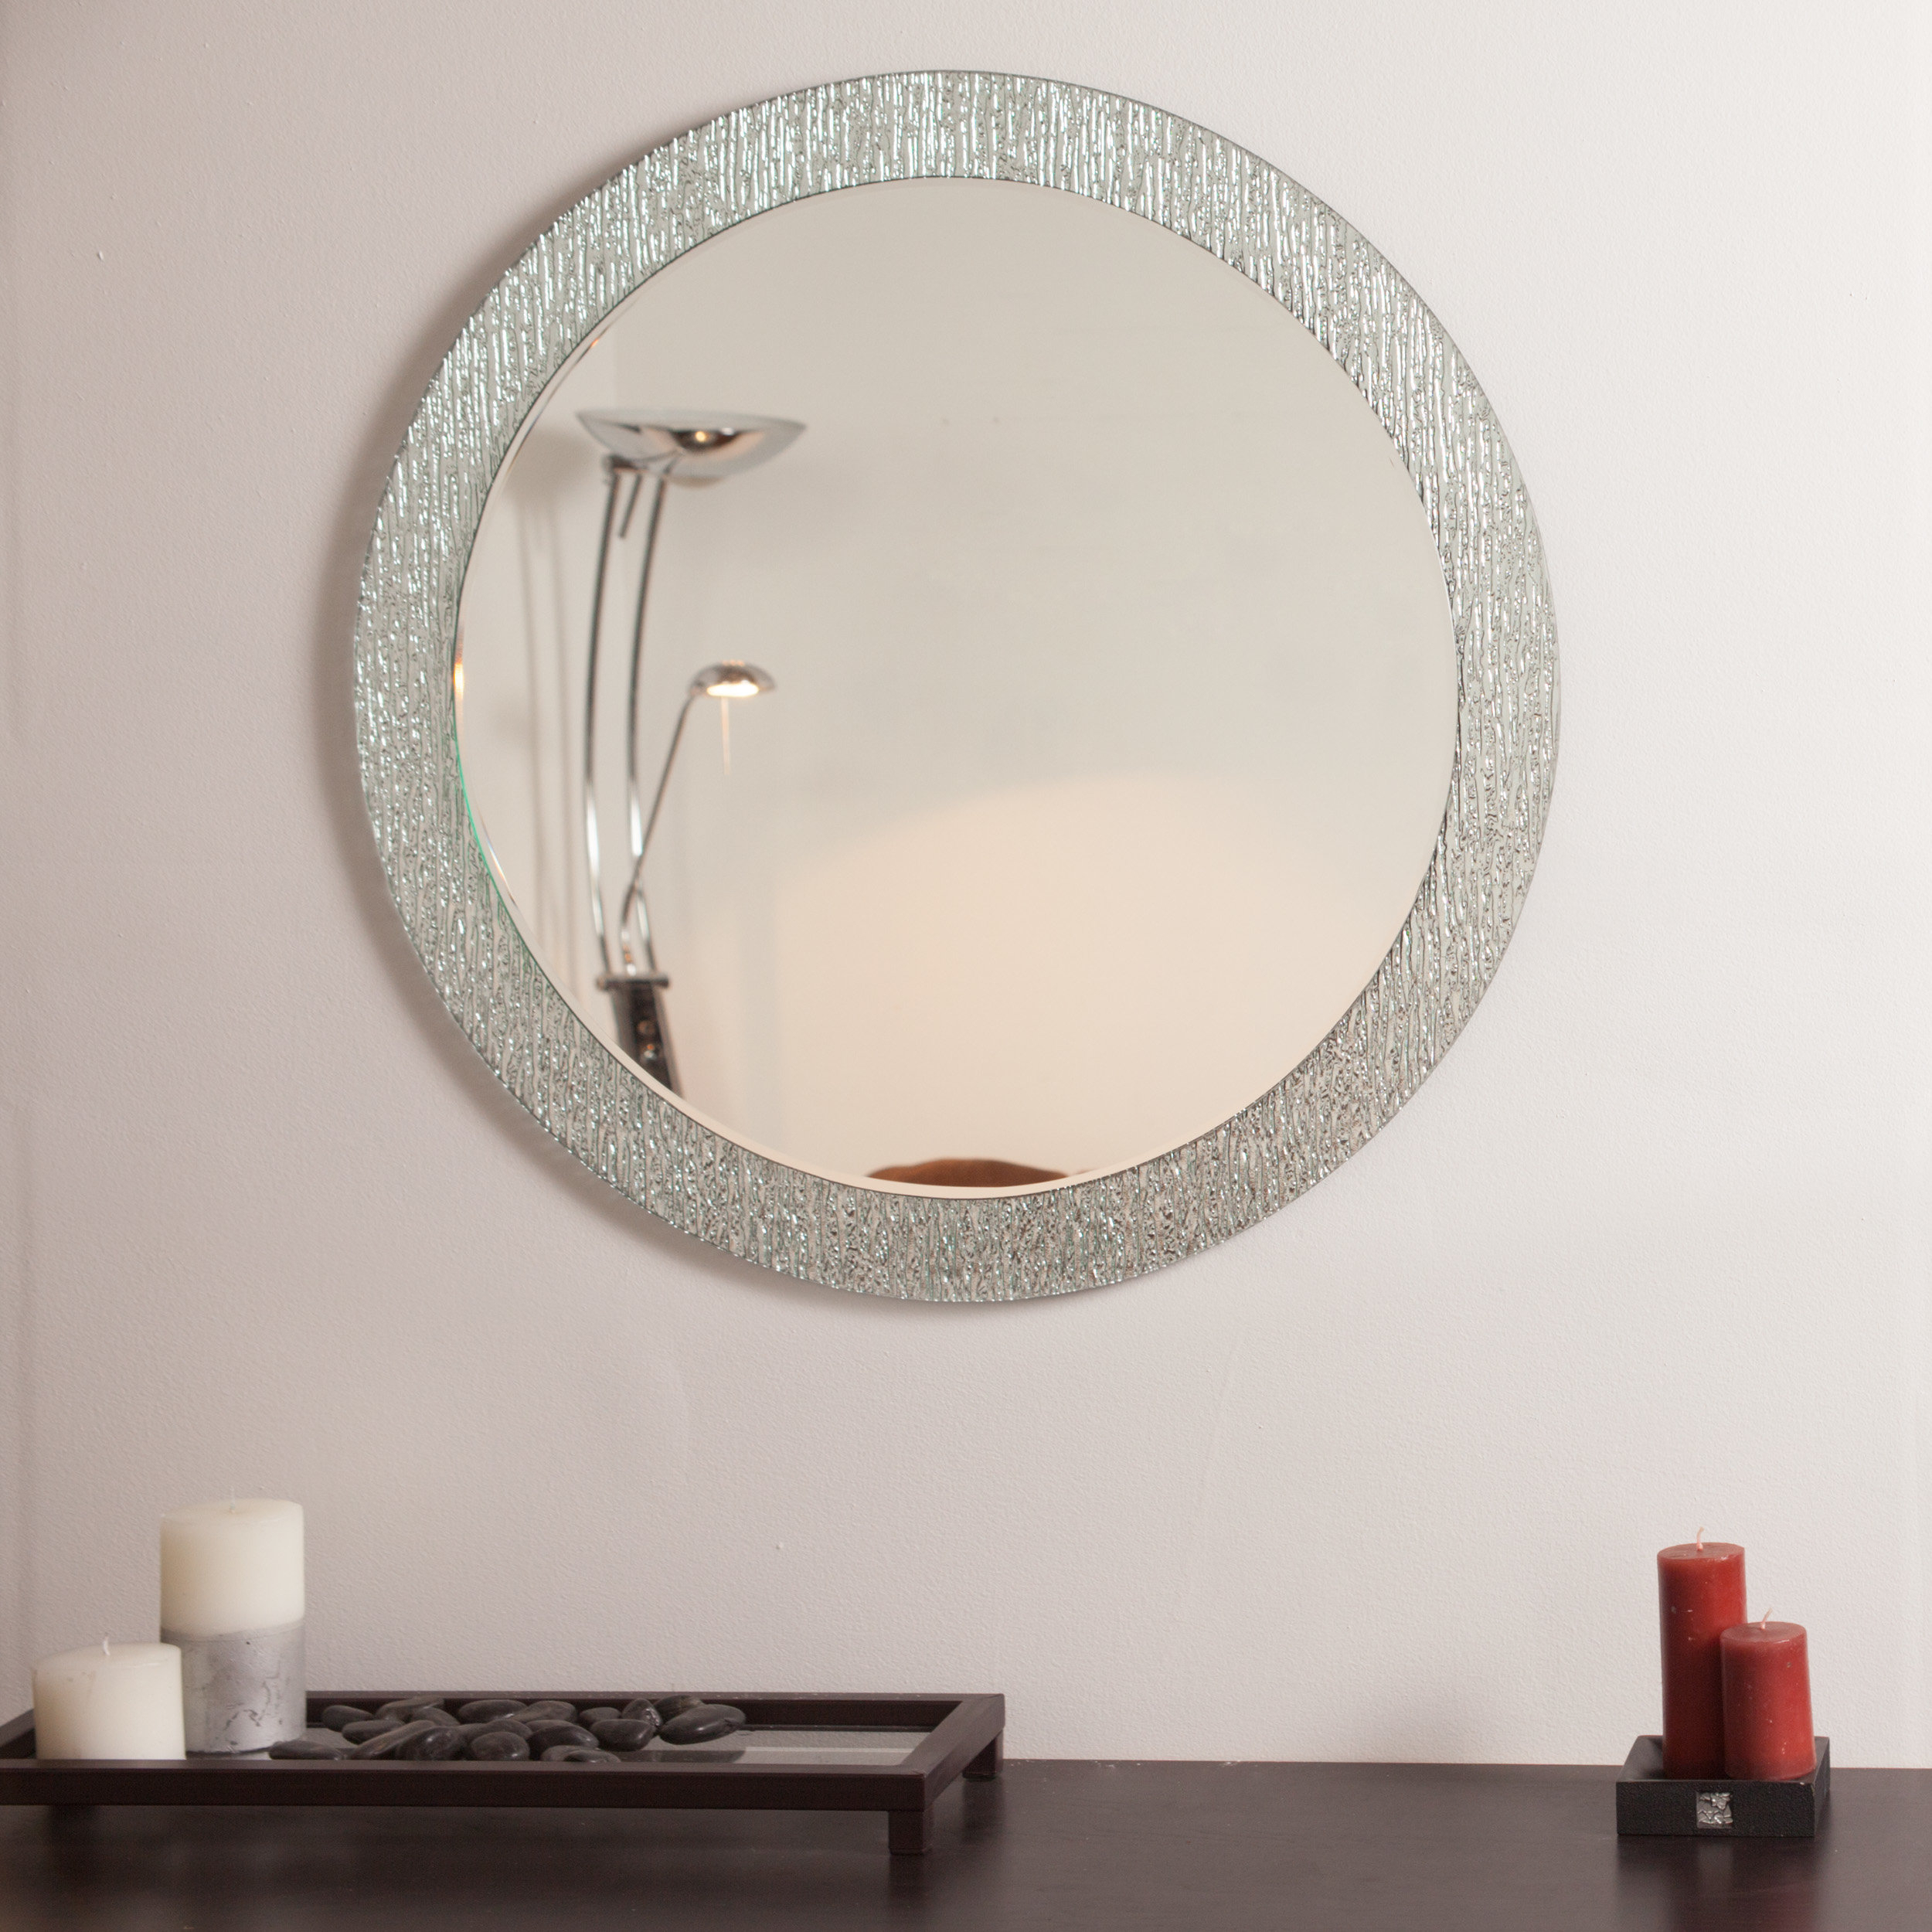 Point Reyes Molten Round Wall Mirror With Regard To Tata Openwork Round Wall Mirrors (Image 8 of 20)